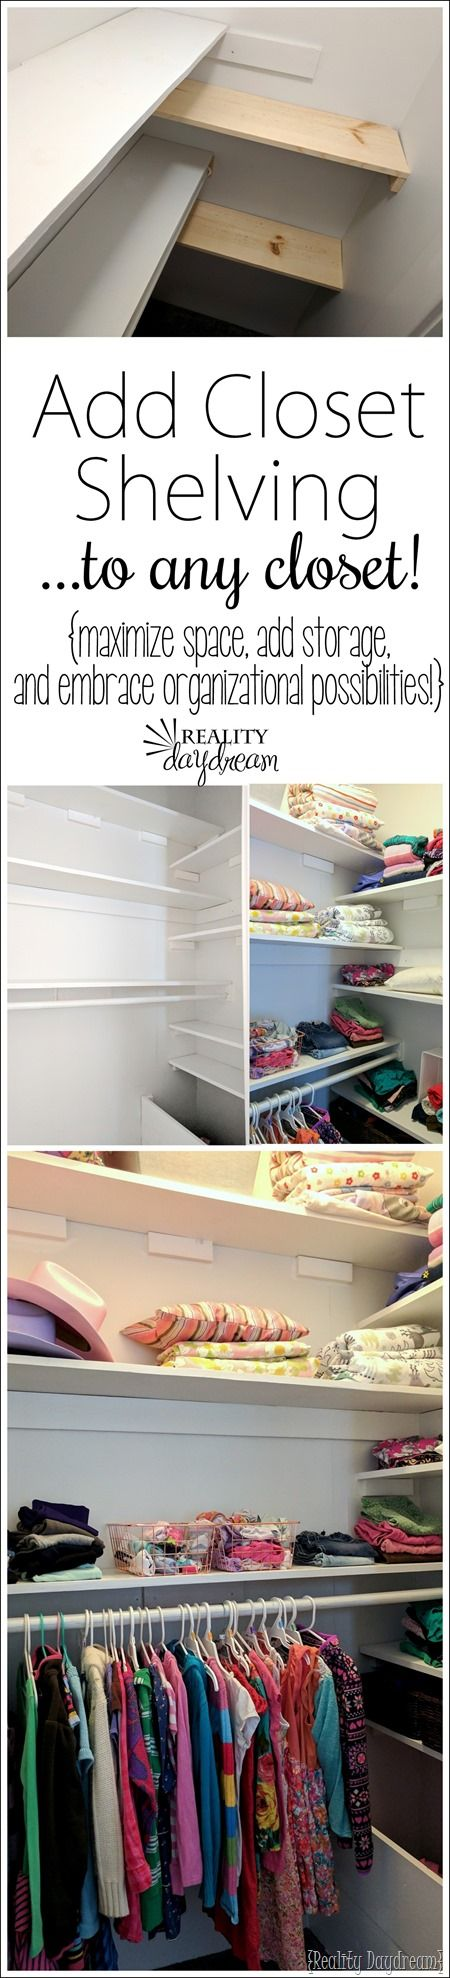 Best Maximize Closet Space Ideas On Pinterest Organizing - Cool diy coat rack for maximizing closet space